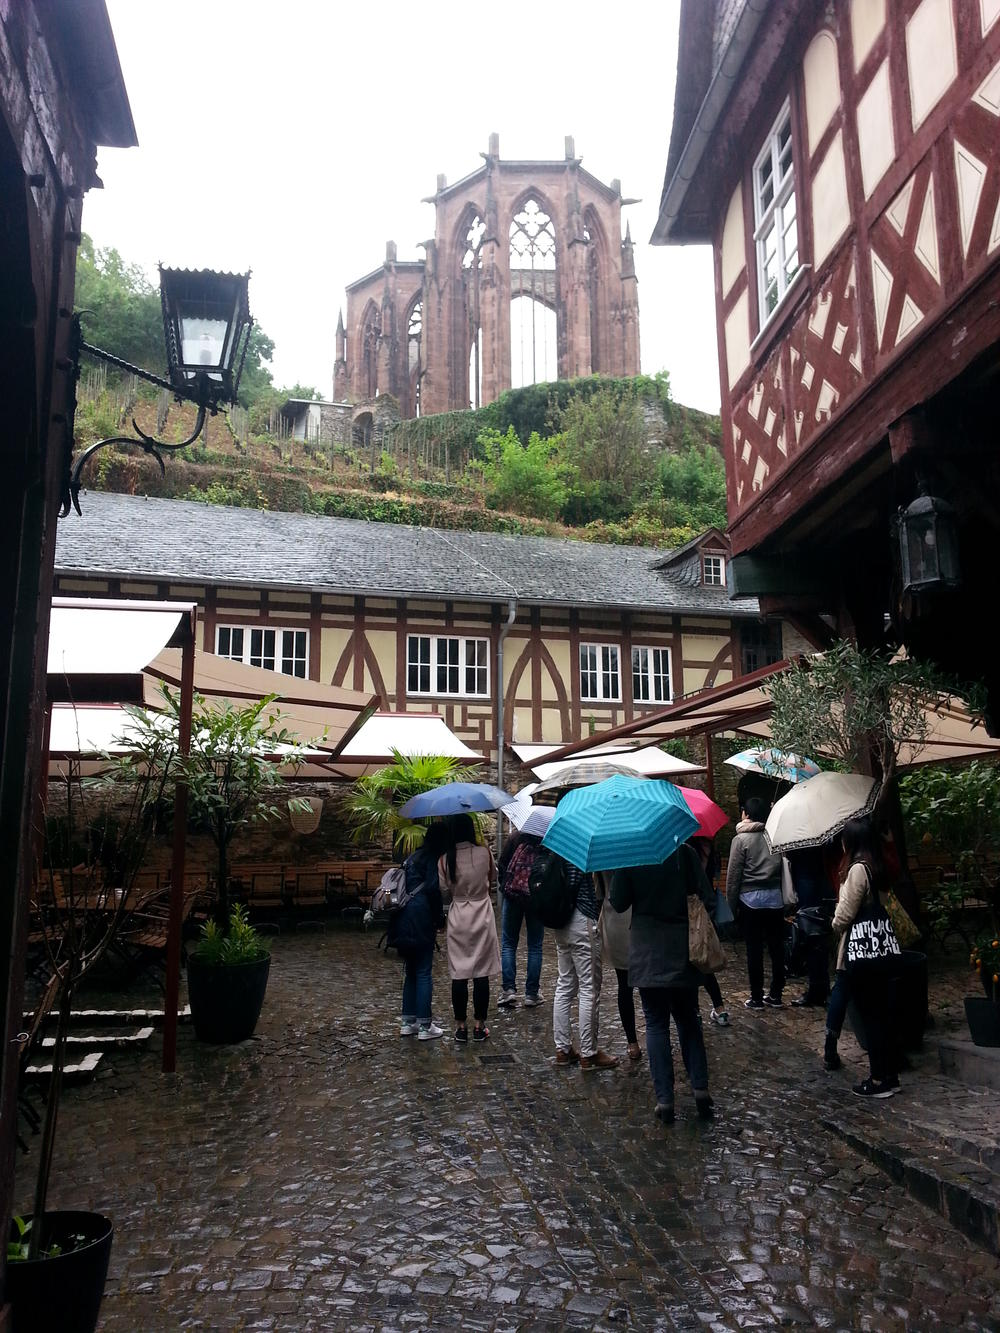 Bad wheather and beautiful views in Bacharach.